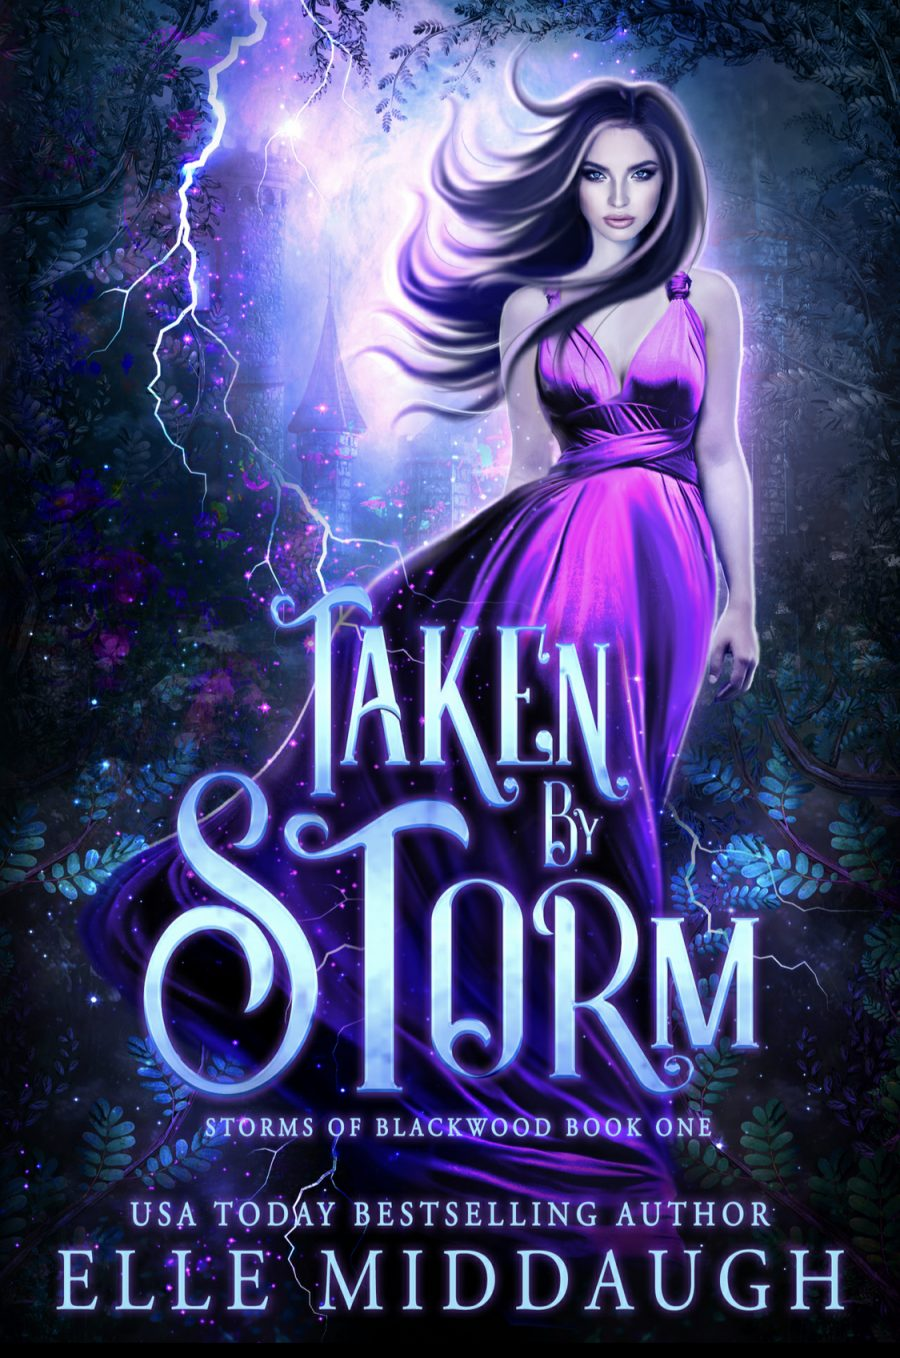 Taken by Storm (Storms of Blackwood - Book 1) by Elle Middaugh - A Book Review #BookReview #FastBurn #RH #3stars #PNR #Fantasy #KindleUnlimited #KU